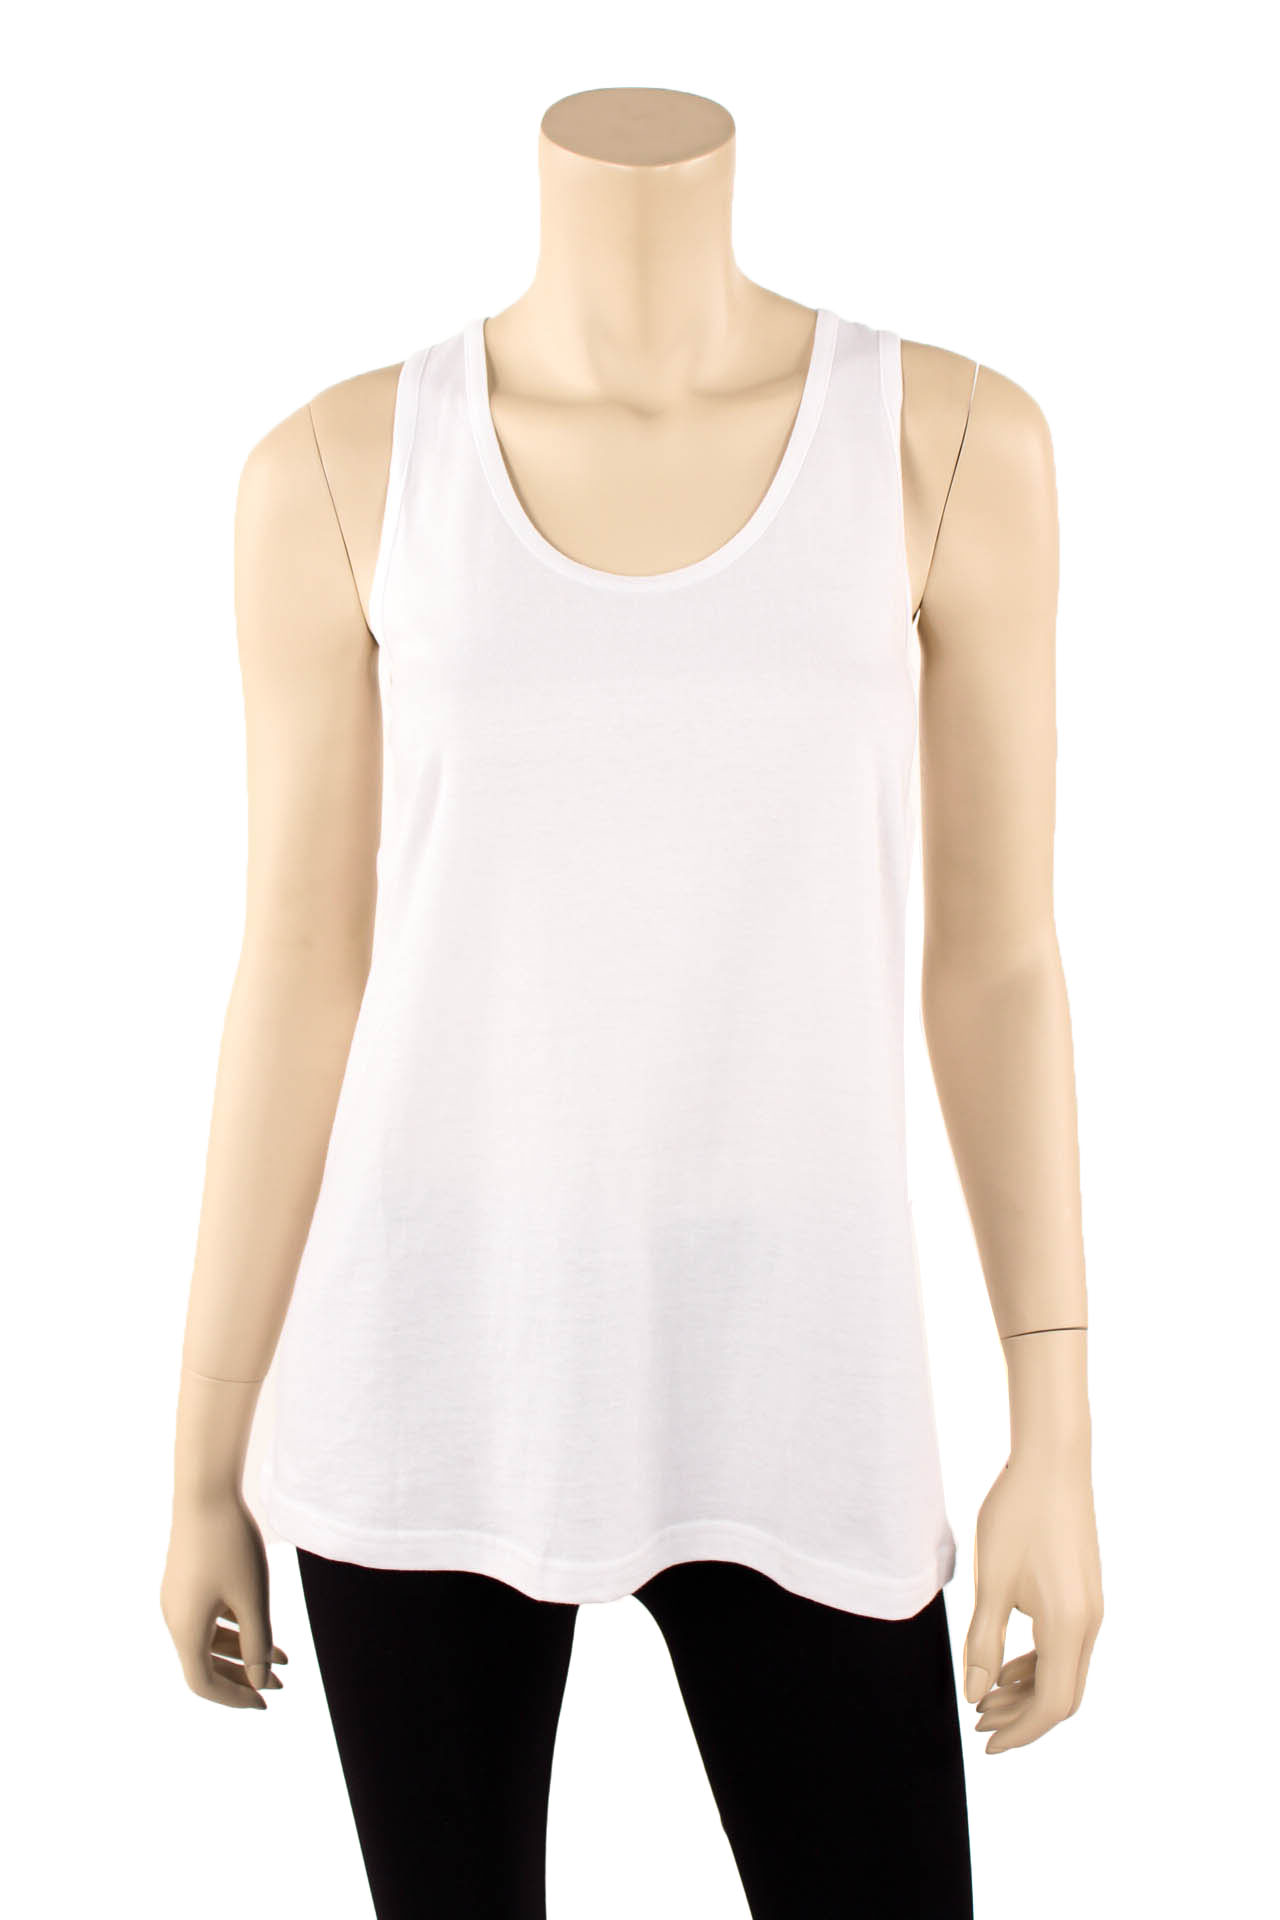 Tank Tops Women There is no end to where tank tops can go; women can assemble looks for the office or the gym around the right styling of tank. Simple, cotton, sleeveless tees are ideal for workouts.